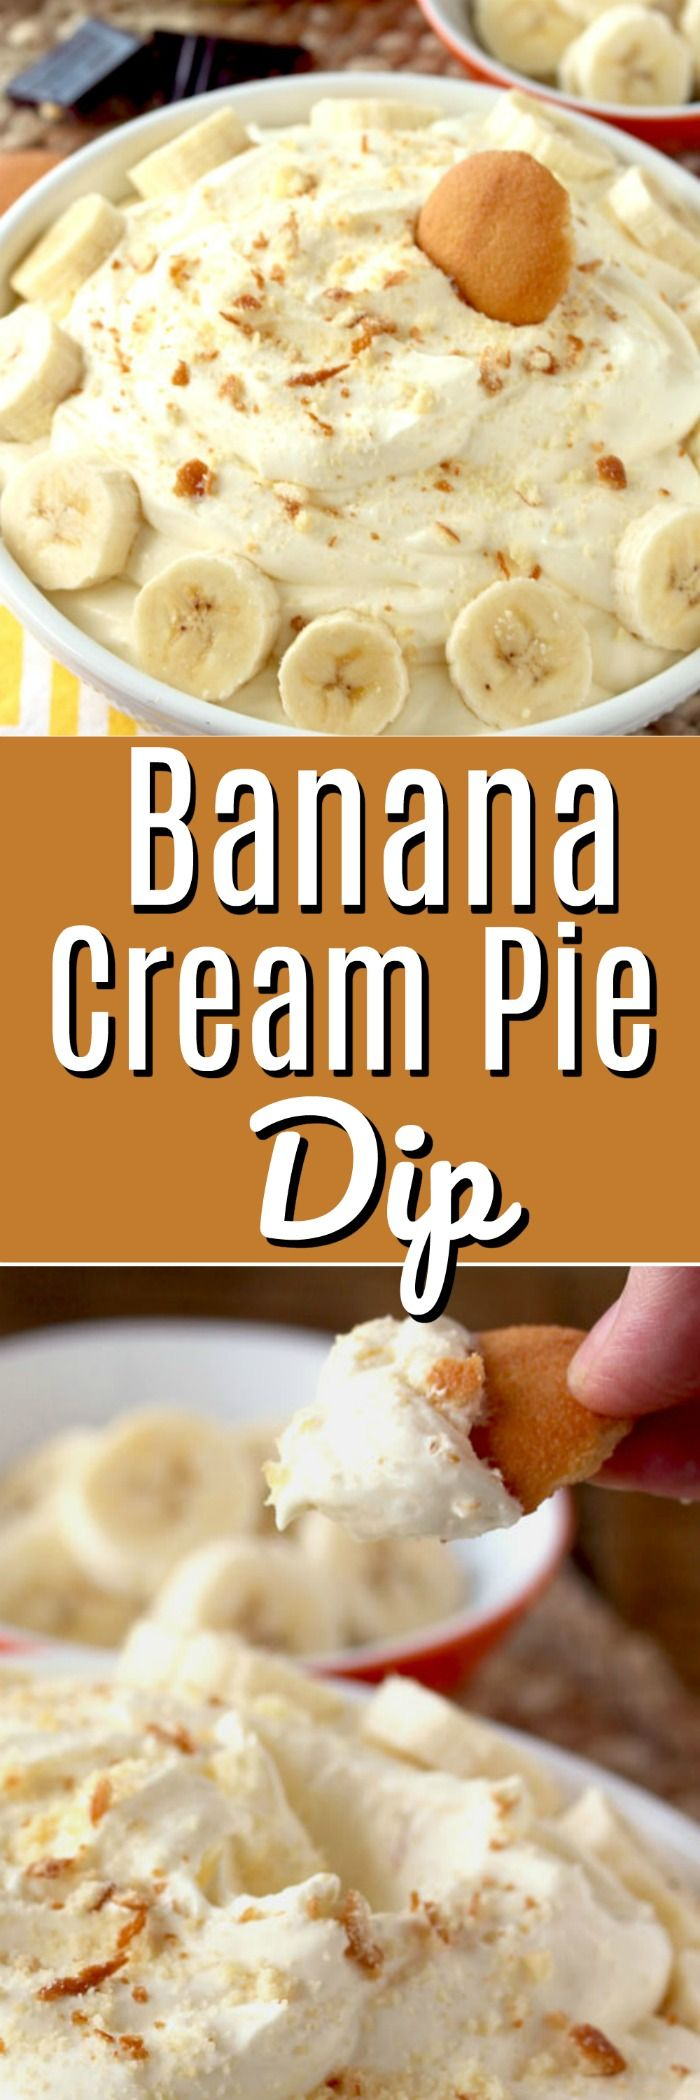 This Banana Cream Pie Dip is sweet, silky, smooth, creamy and irresistible! Everything you love in a banana cream pie recipe but in a super easy and quick dip. With only a handful of ingredients, this no-bake dip is the perfect sweet treat for just about any occasion!